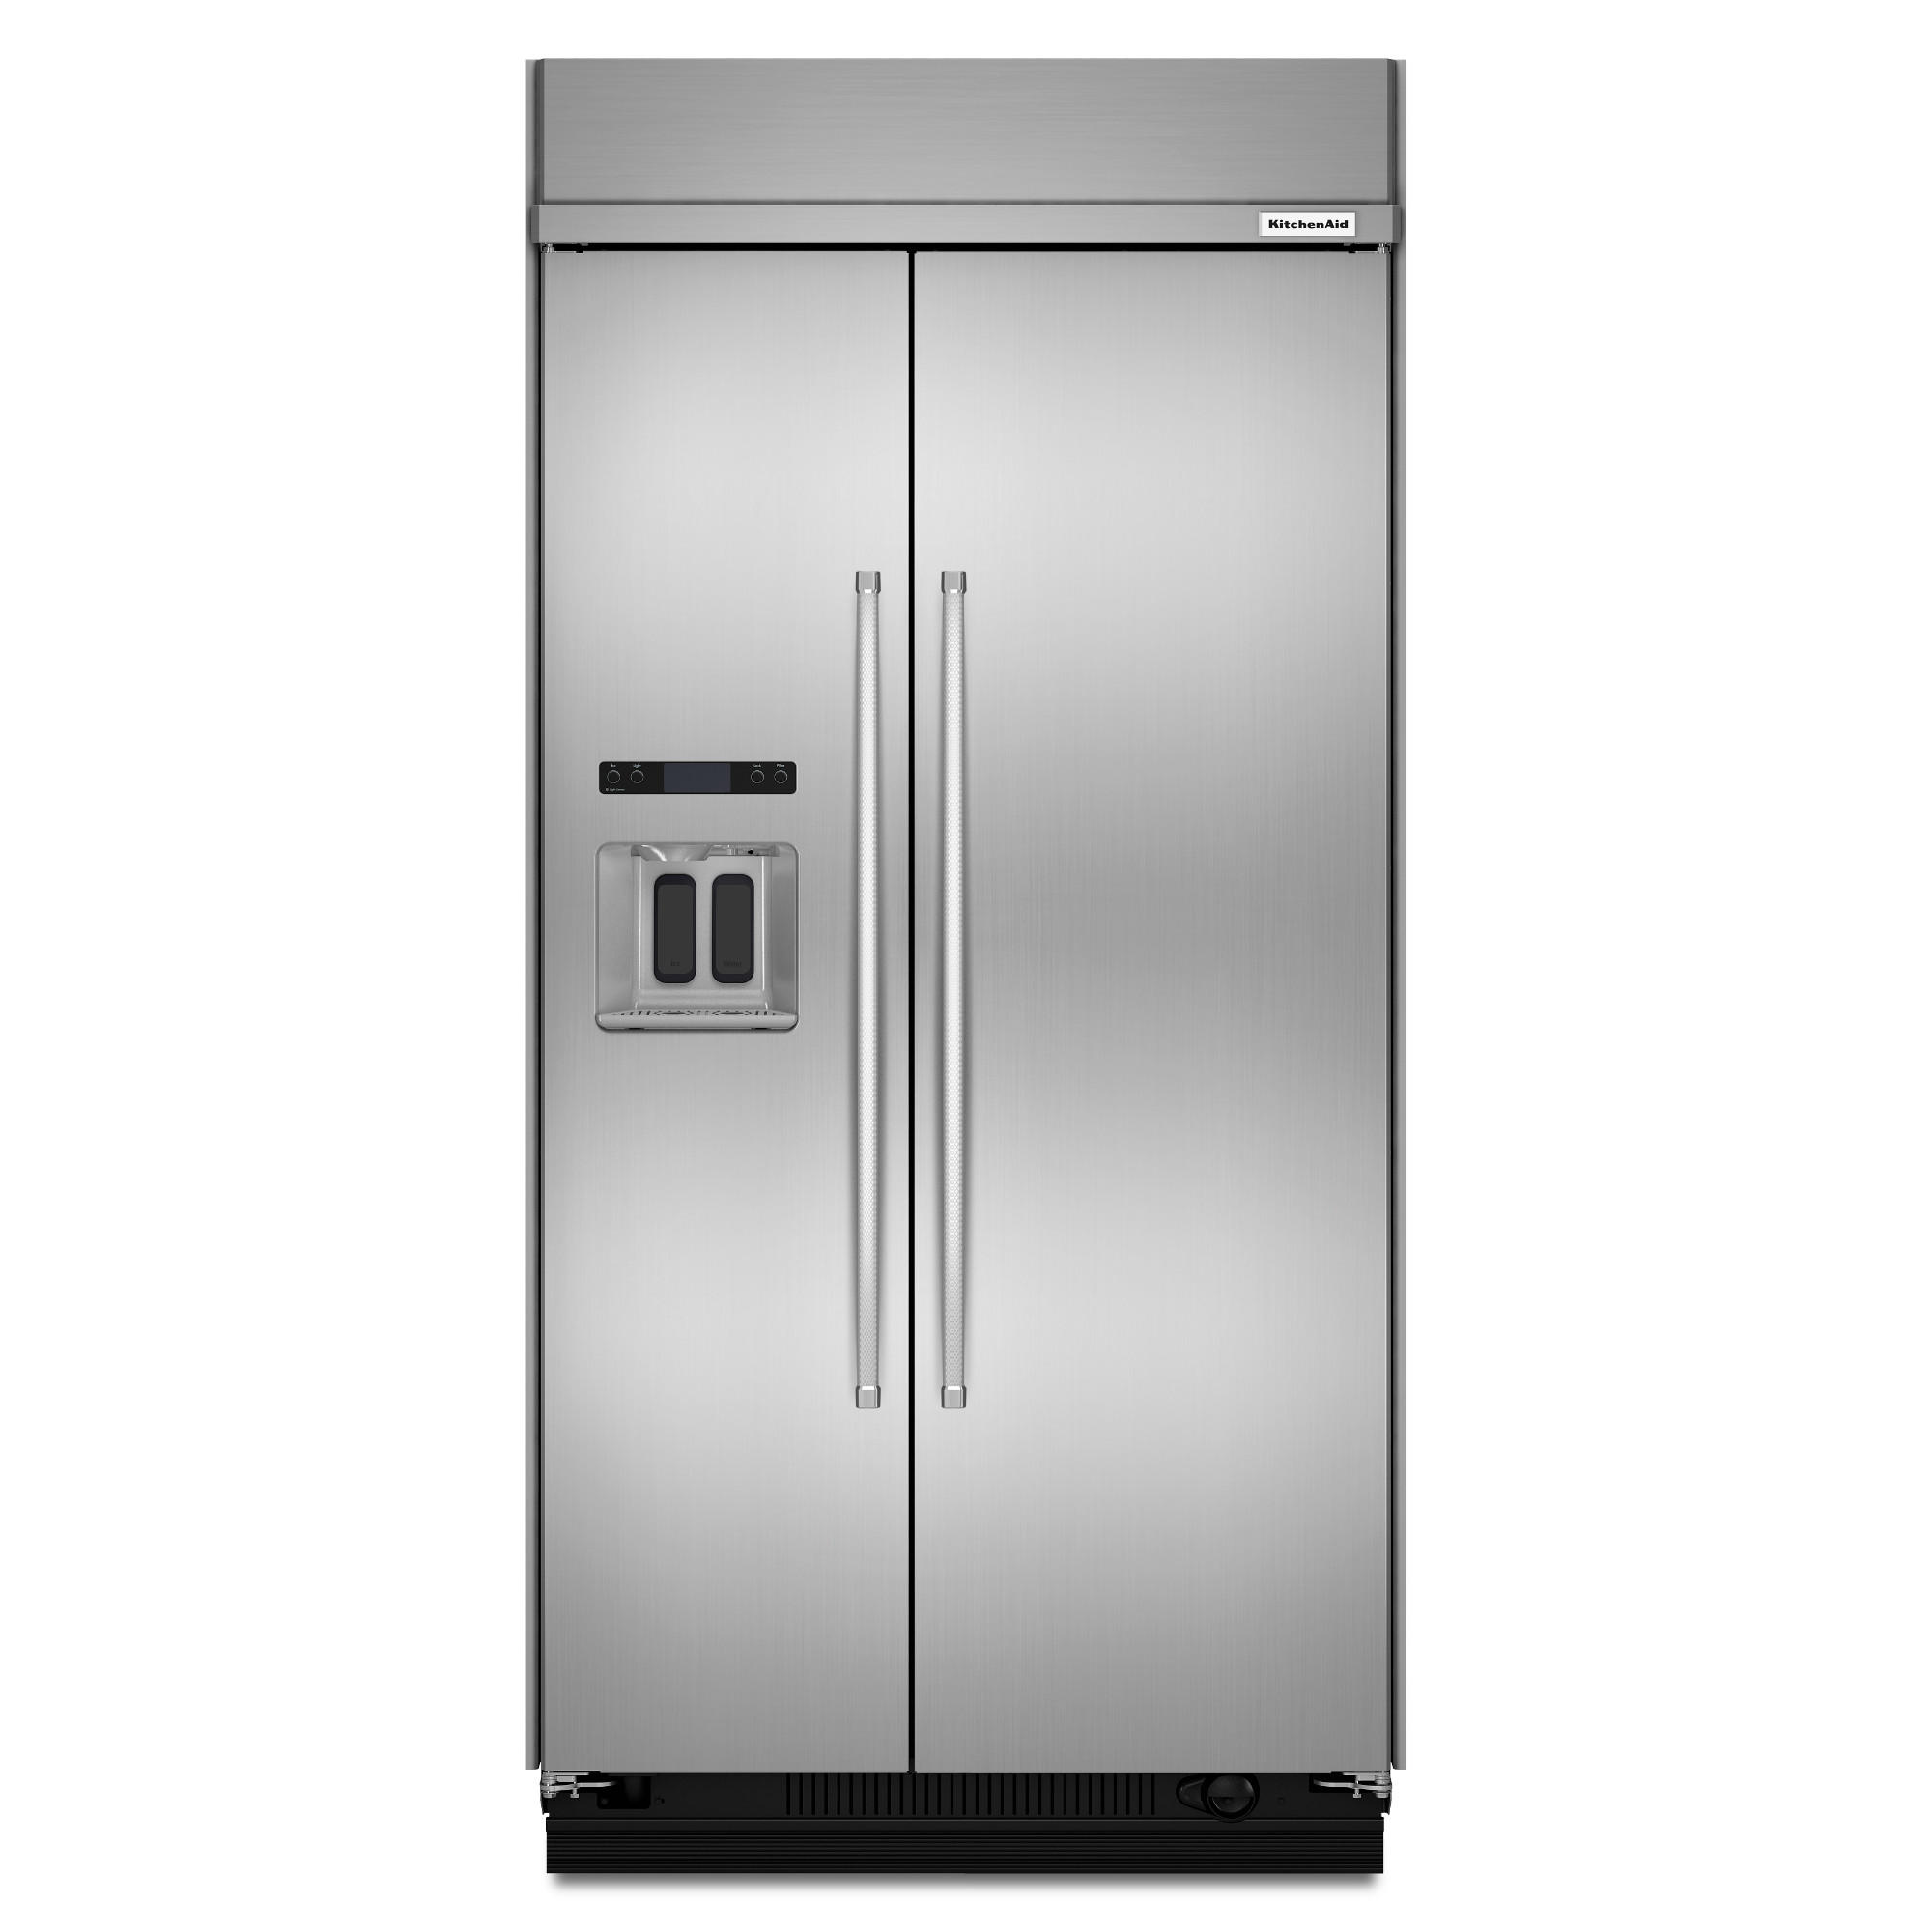 KitchenAid KBSD608ESS 29.5 cu. ft. Built-In Refrigerator - Stainless Steel